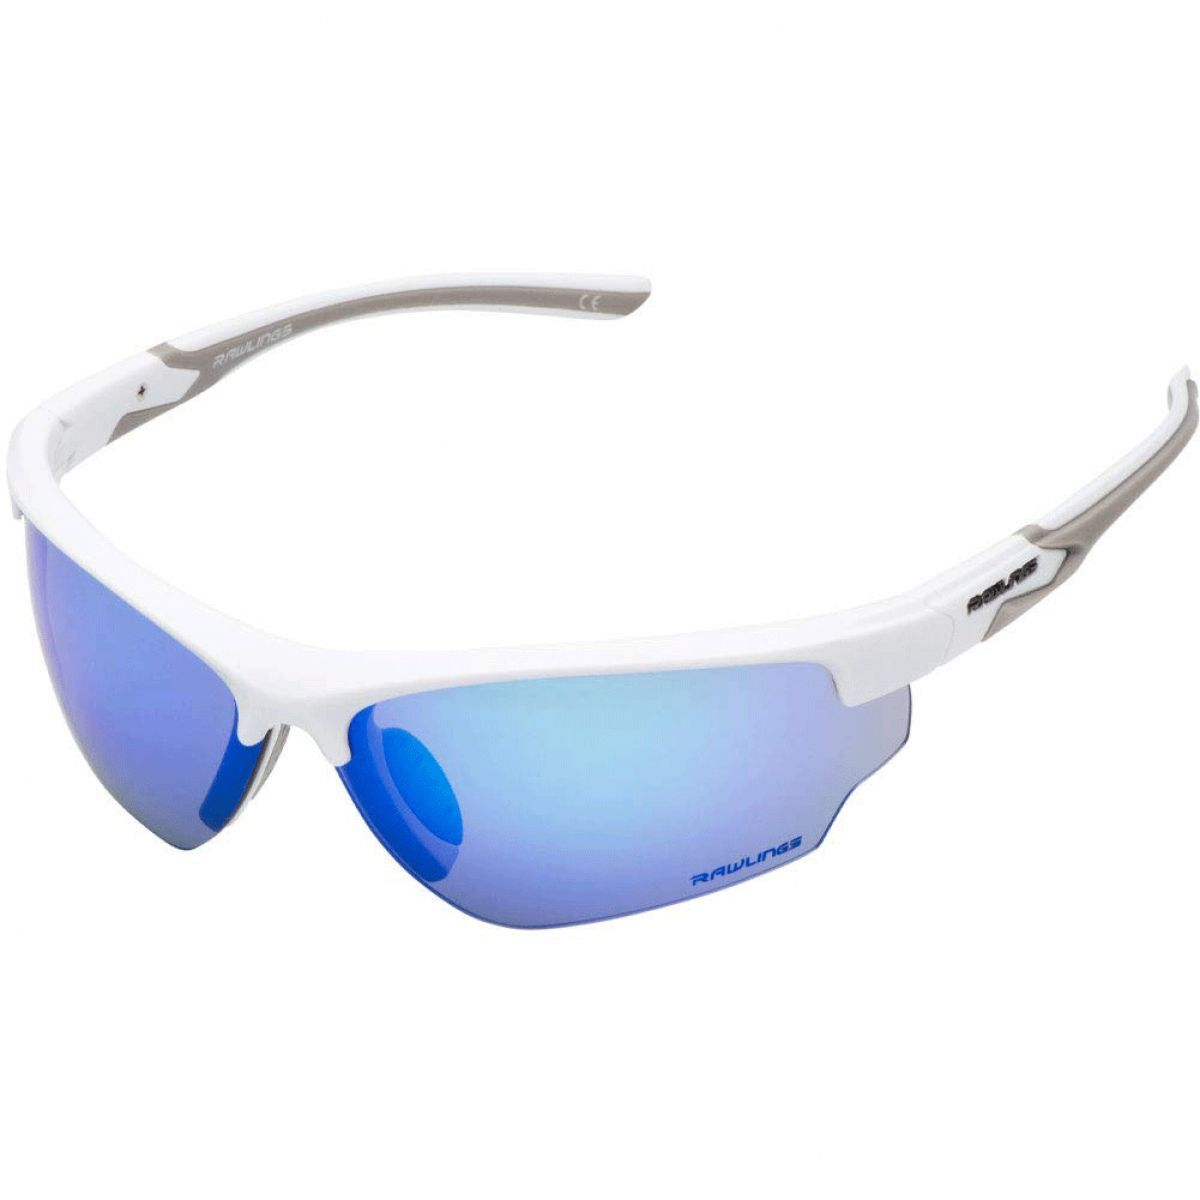 Rawlings RY103 Sunglasses (Youth Fit)